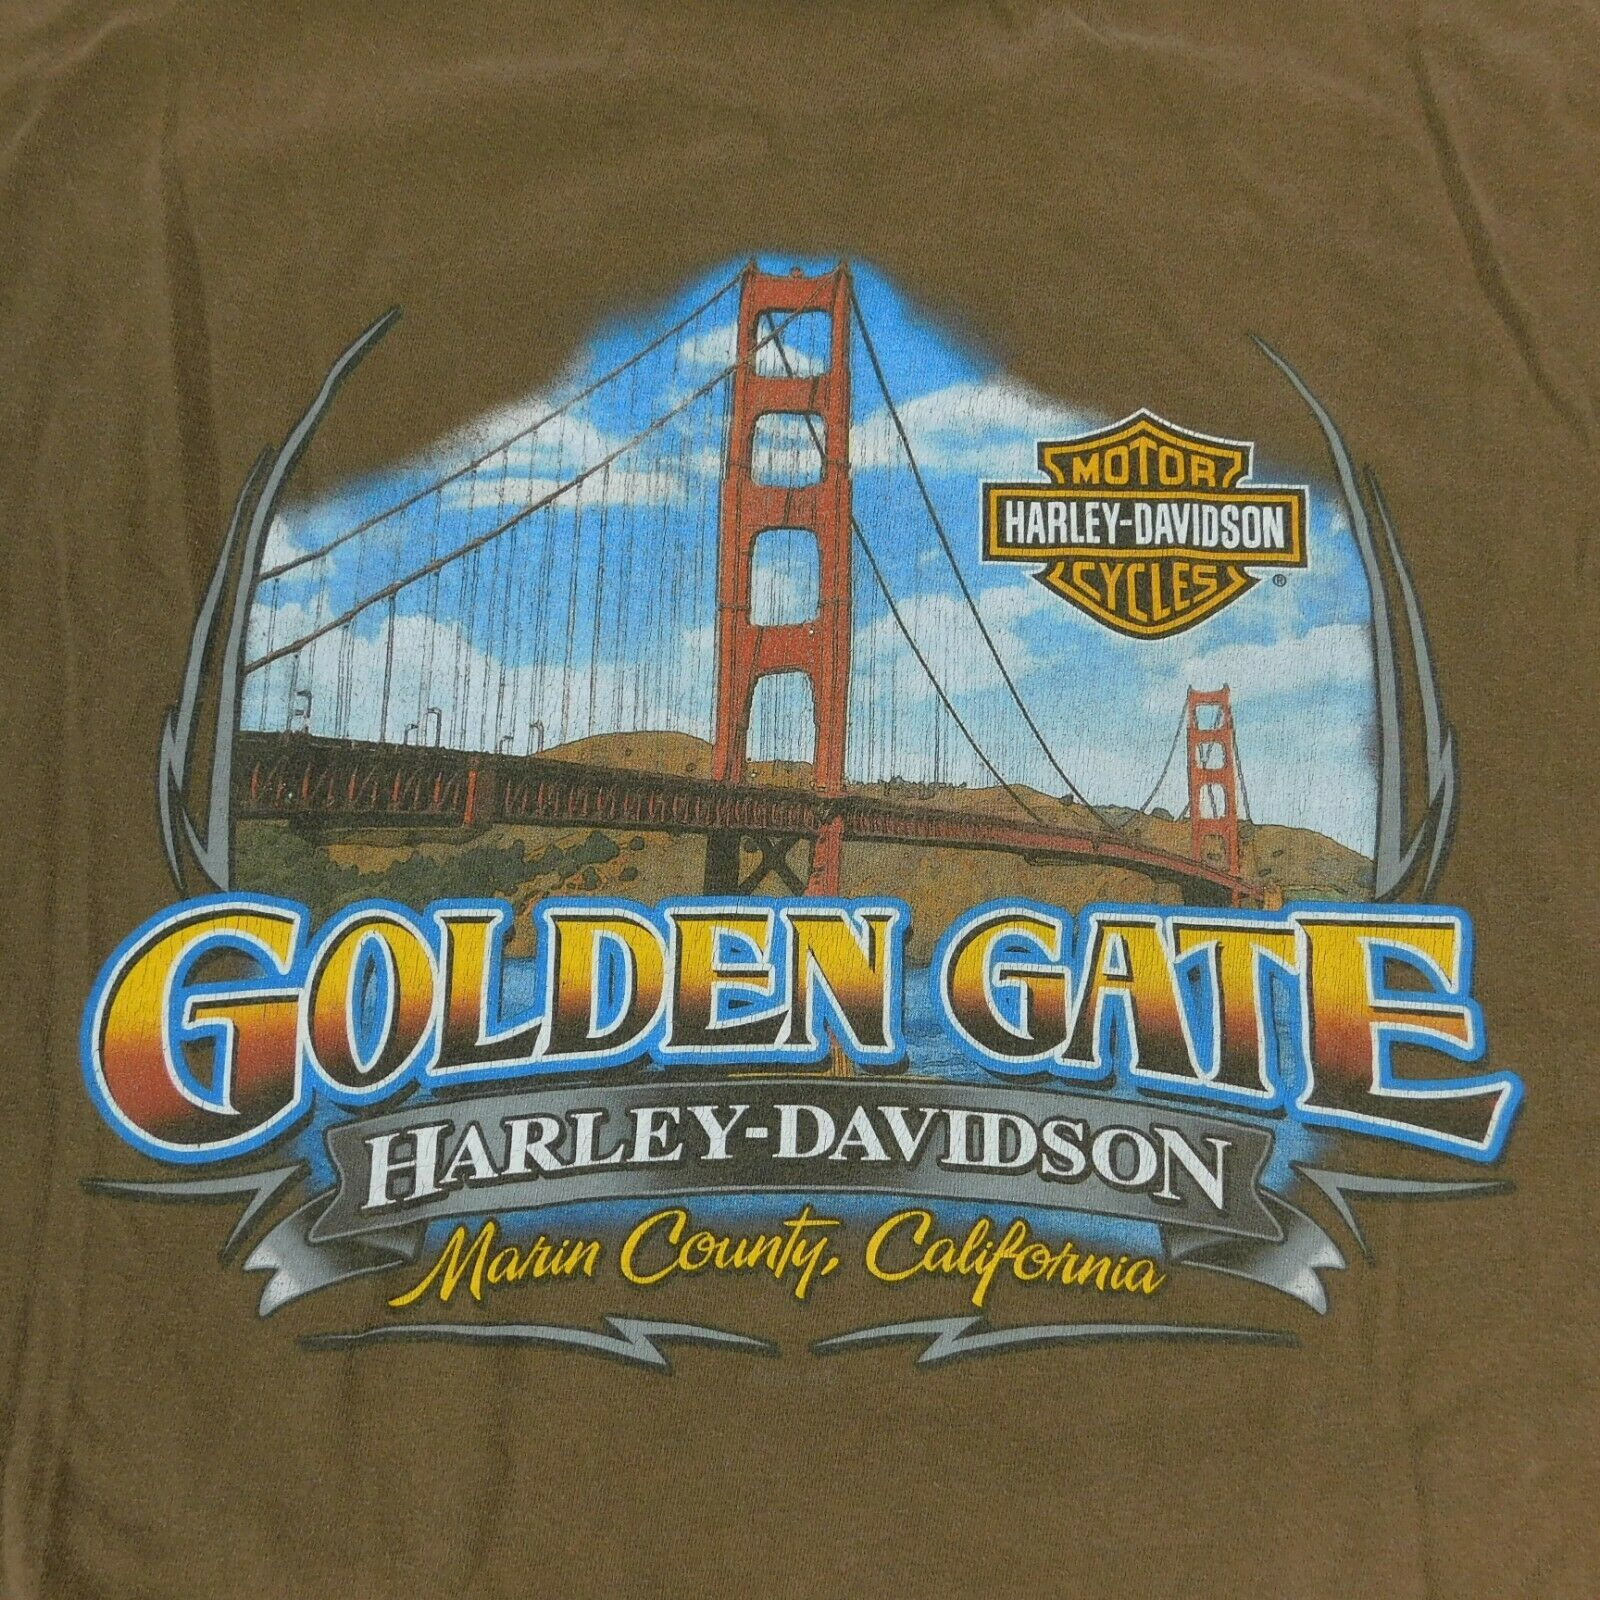 Primary image for Harley Davidson Motor Cycles Golden Gate CA Brown T Shirt Sz 2XL Hanes BeefyT